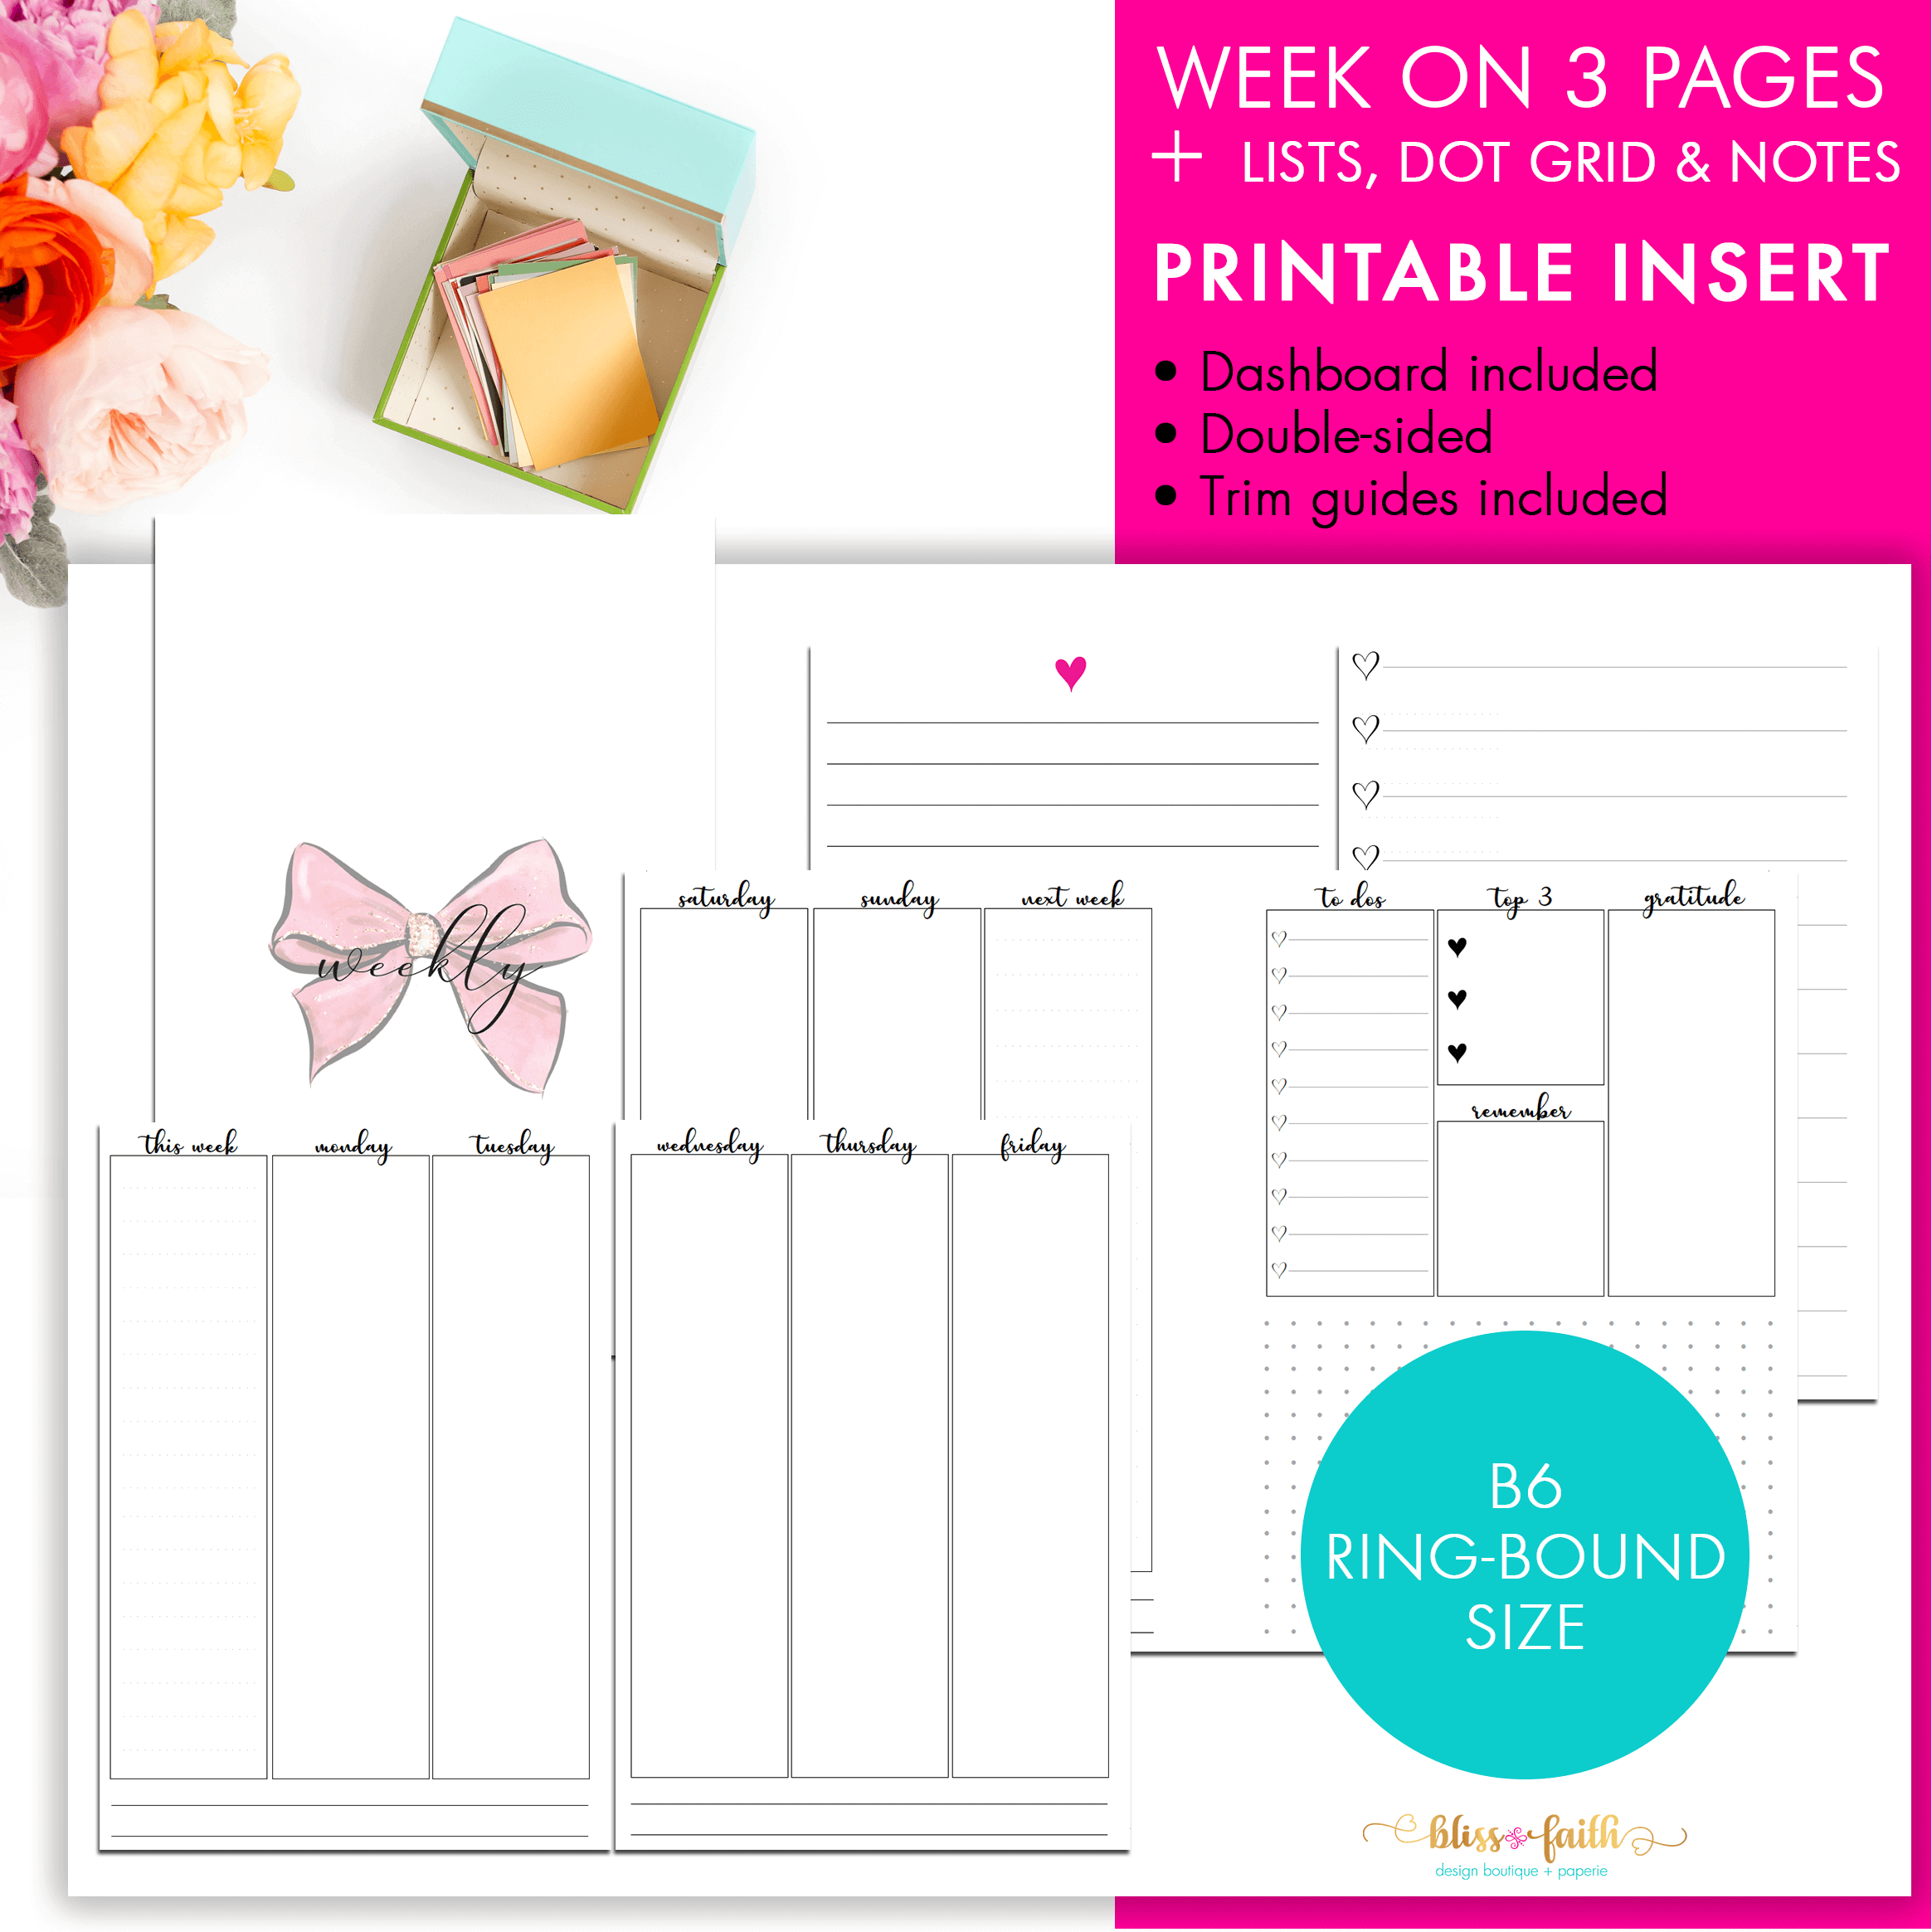 picture relating to Printable Planner Inserts identified as B6 Rings Planner Incorporate Vertical 7 days Upon 3 Web pages + Lists Printable